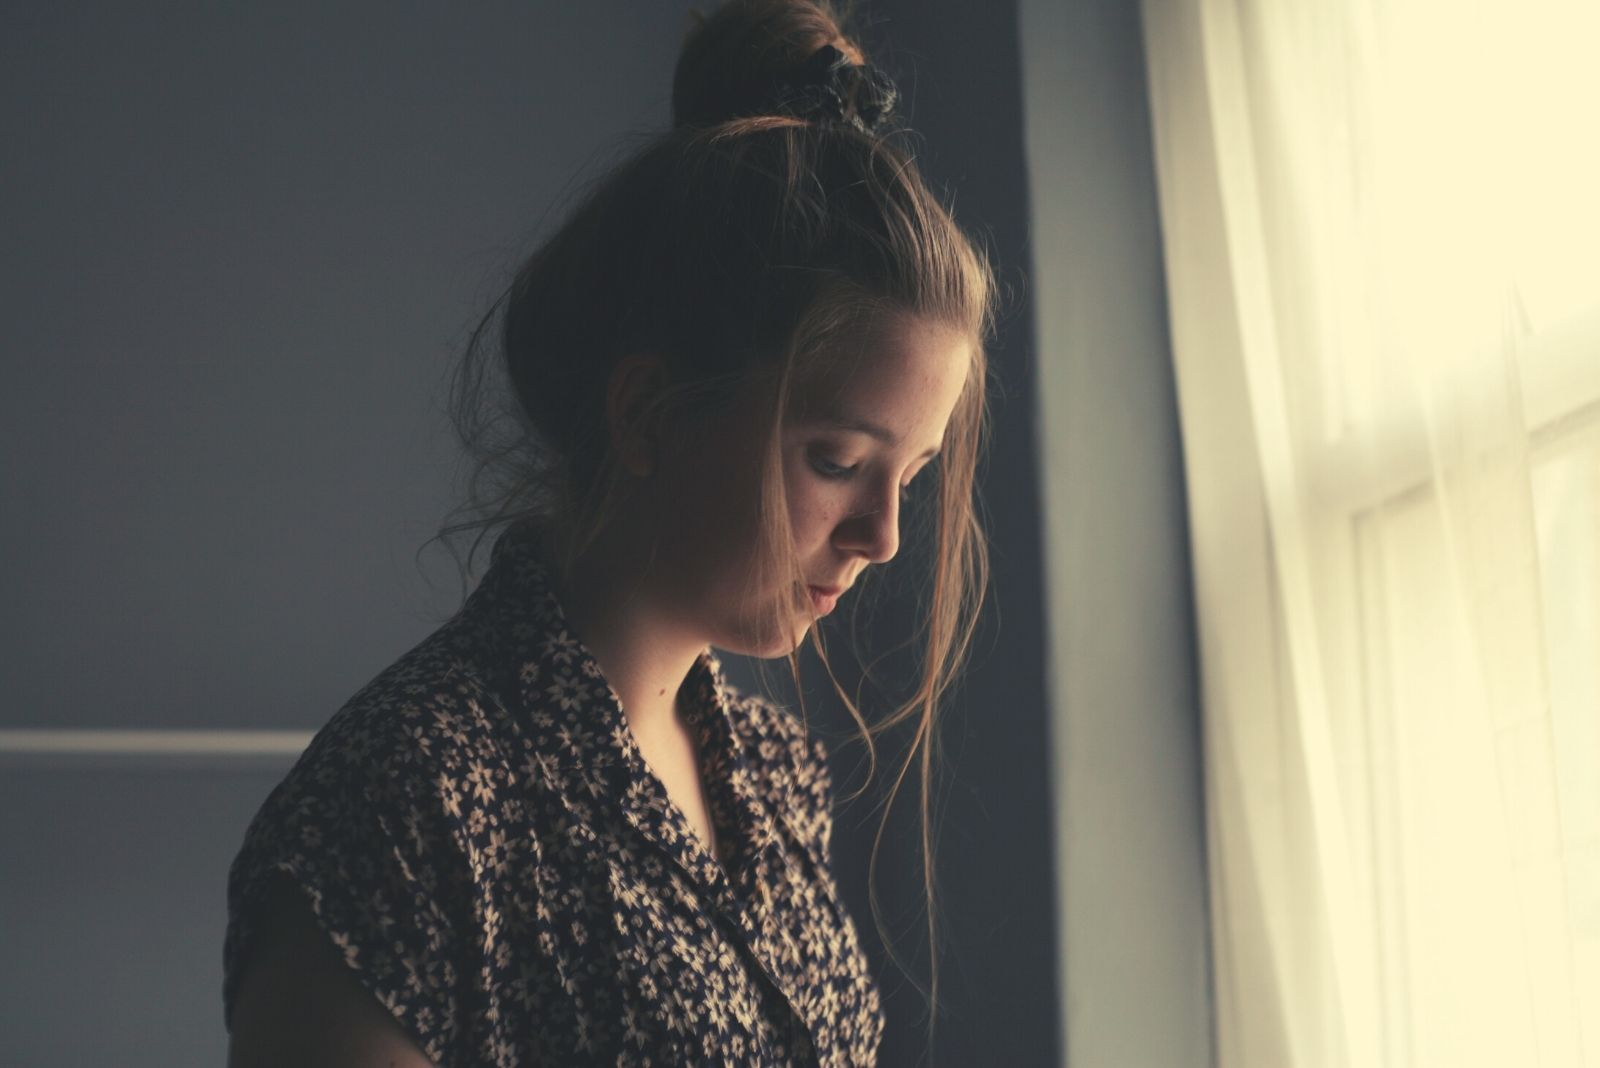 woman standing near the white window curtain sad and pensive